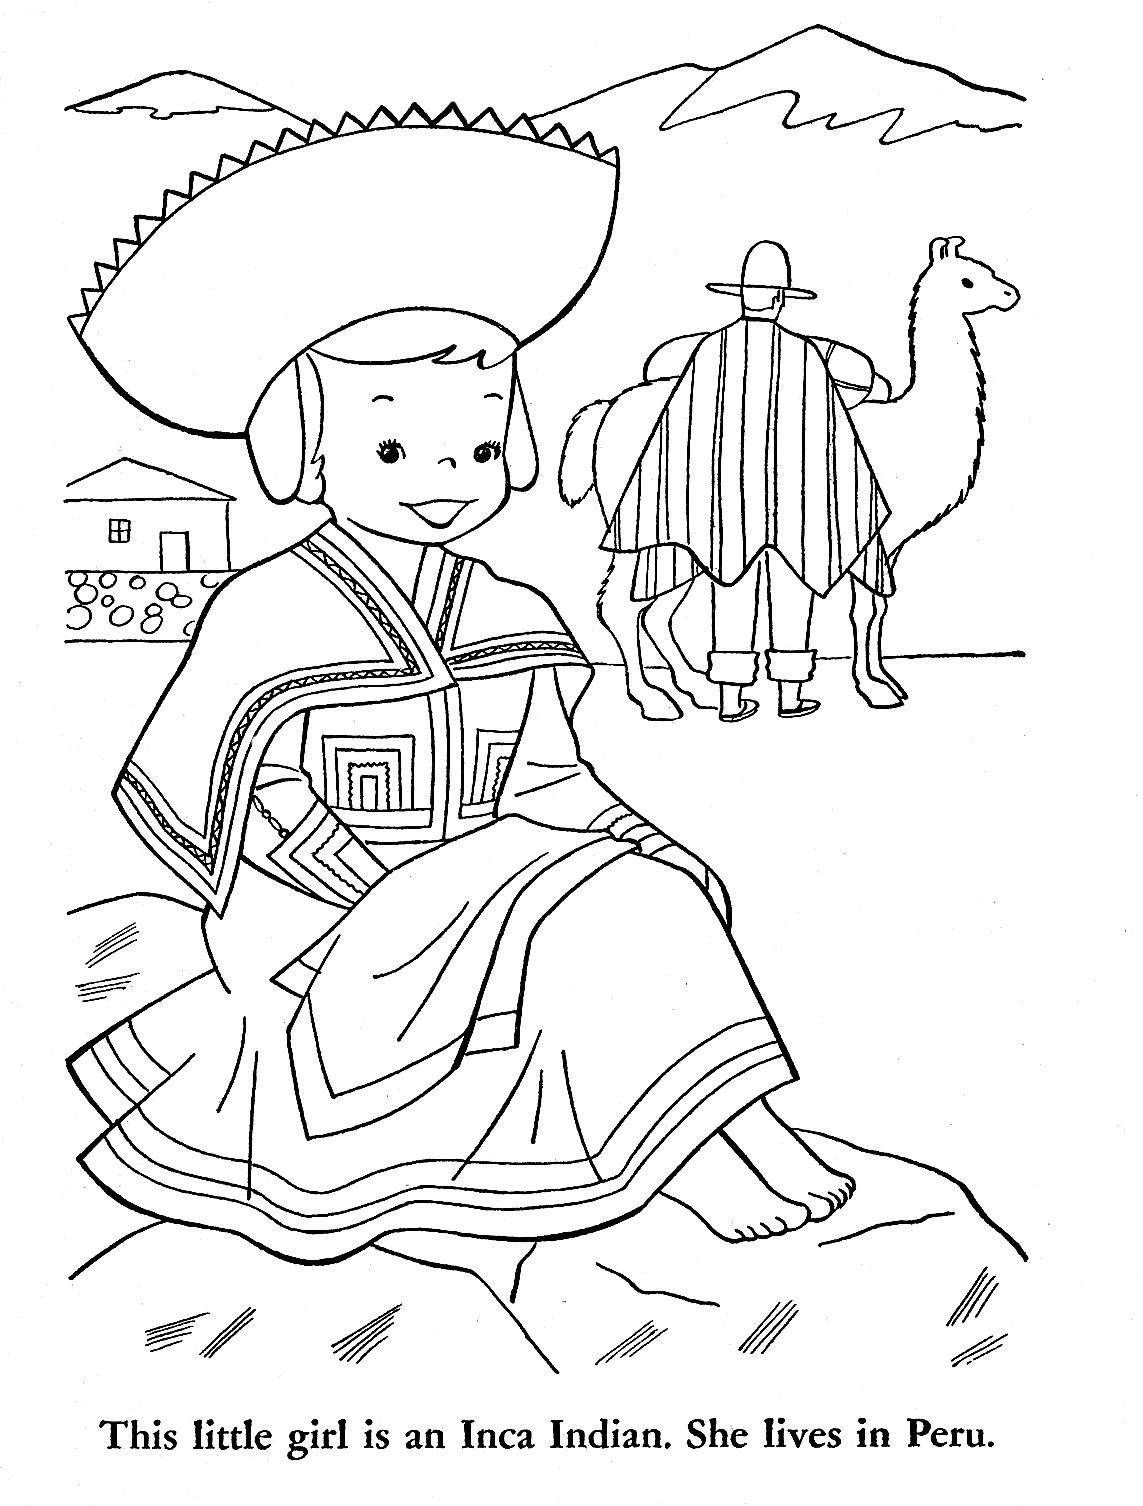 Peru Map Coloring Coloring Pages